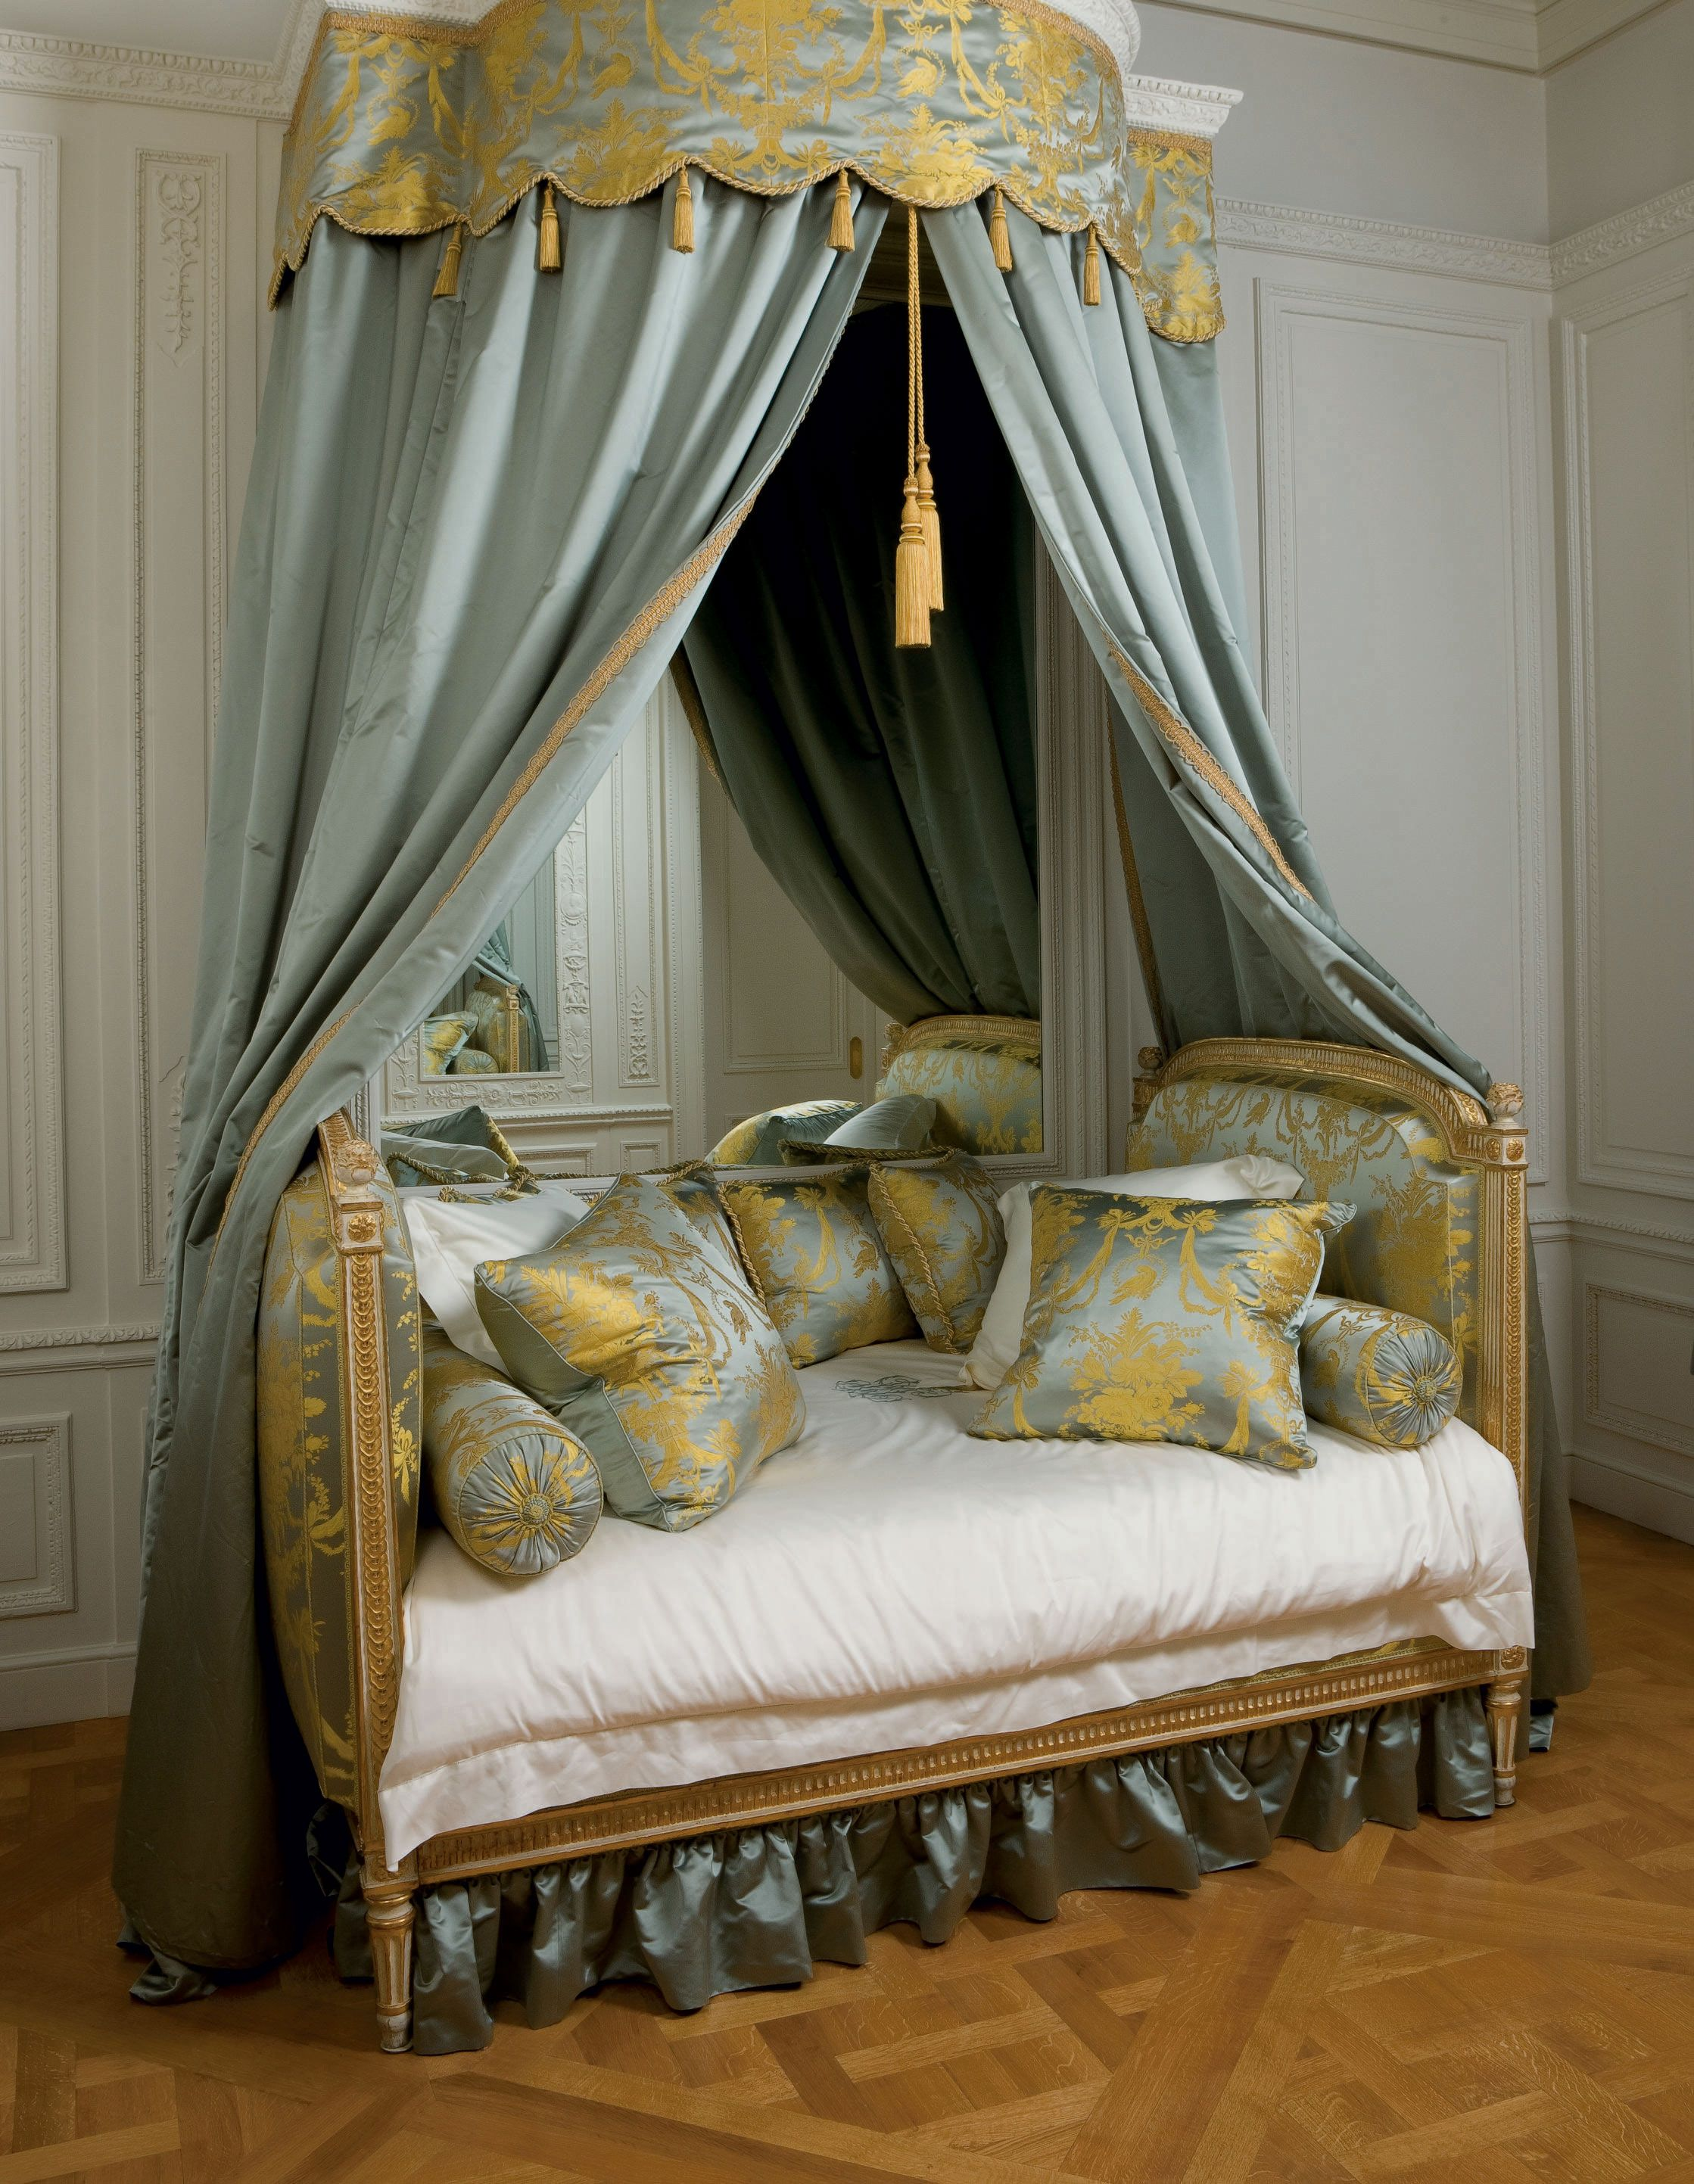 c1775 A LOUIS XVI GREY AND WHITEPAINTED AND PARCELGILT